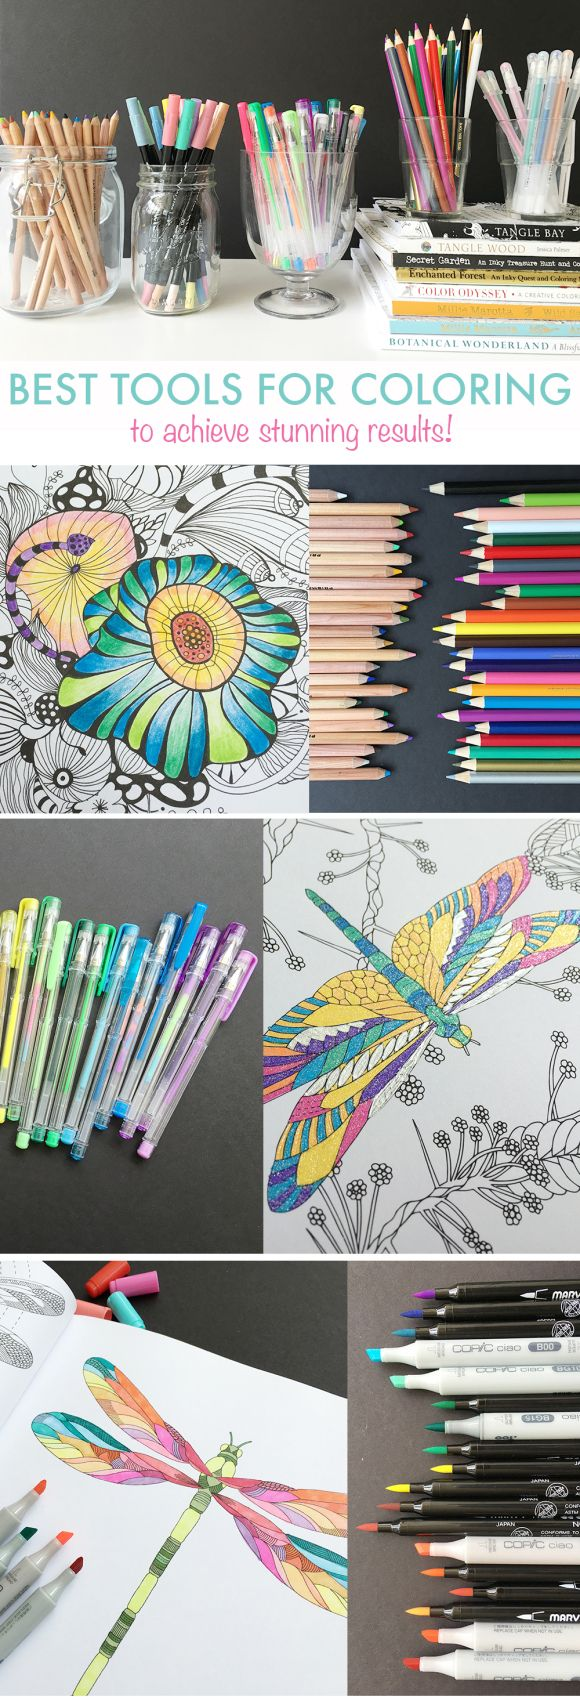 Learn The Best Tools Tips And Tricks For Coloring Looking A Fun